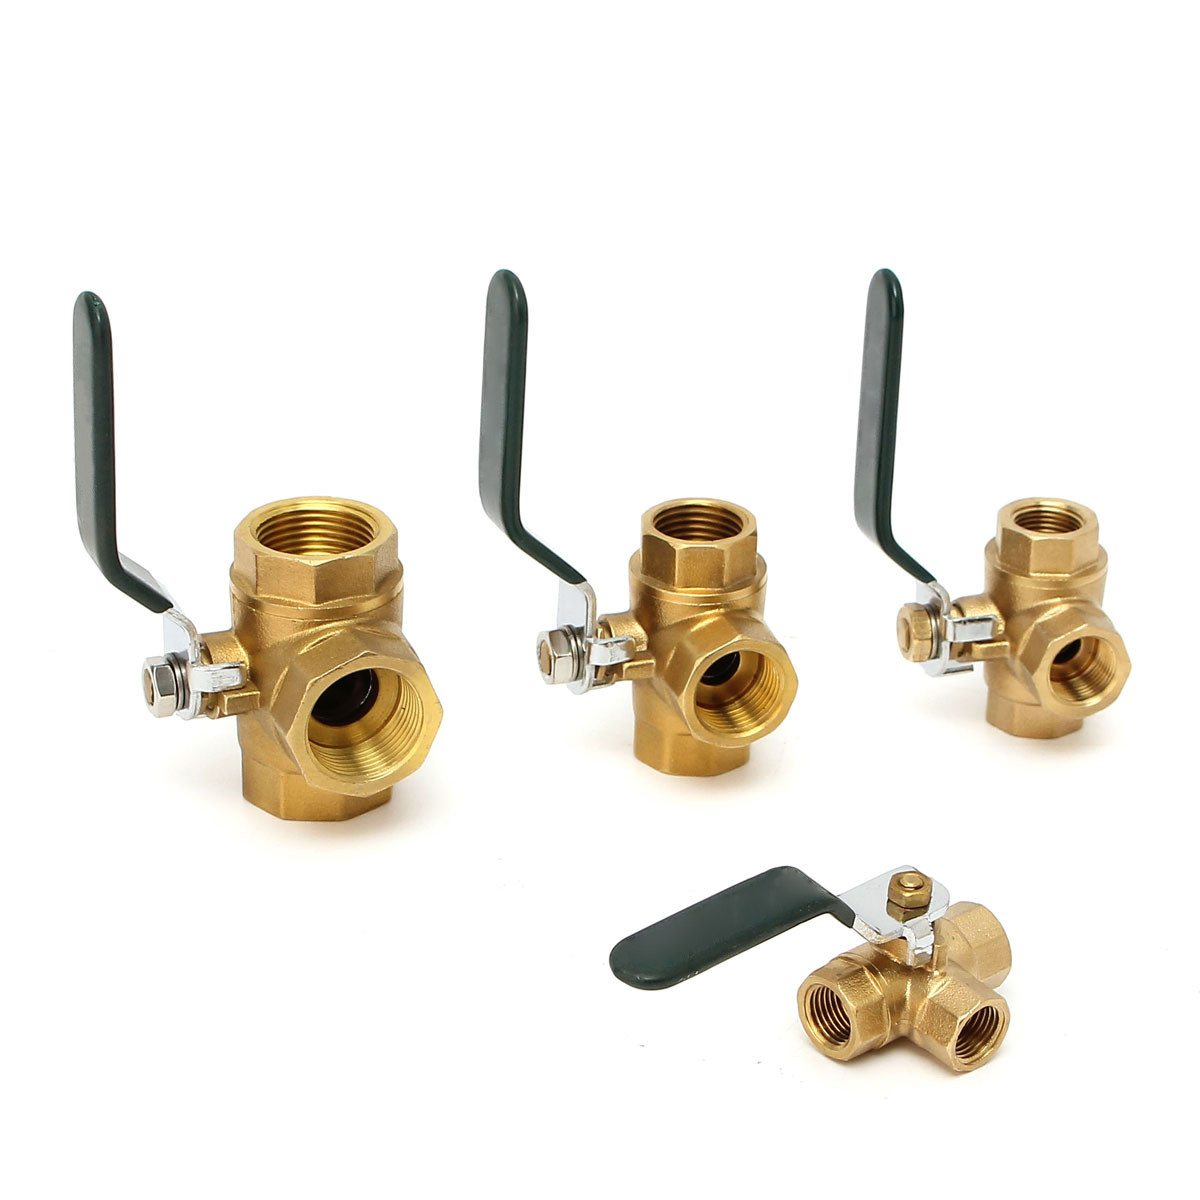 1/4 3/8 1/2 3/4Brass Ball Valve Fixed 3 Way Full LType Port Thread Connector Faucet Value Water Filter Adapter Handle